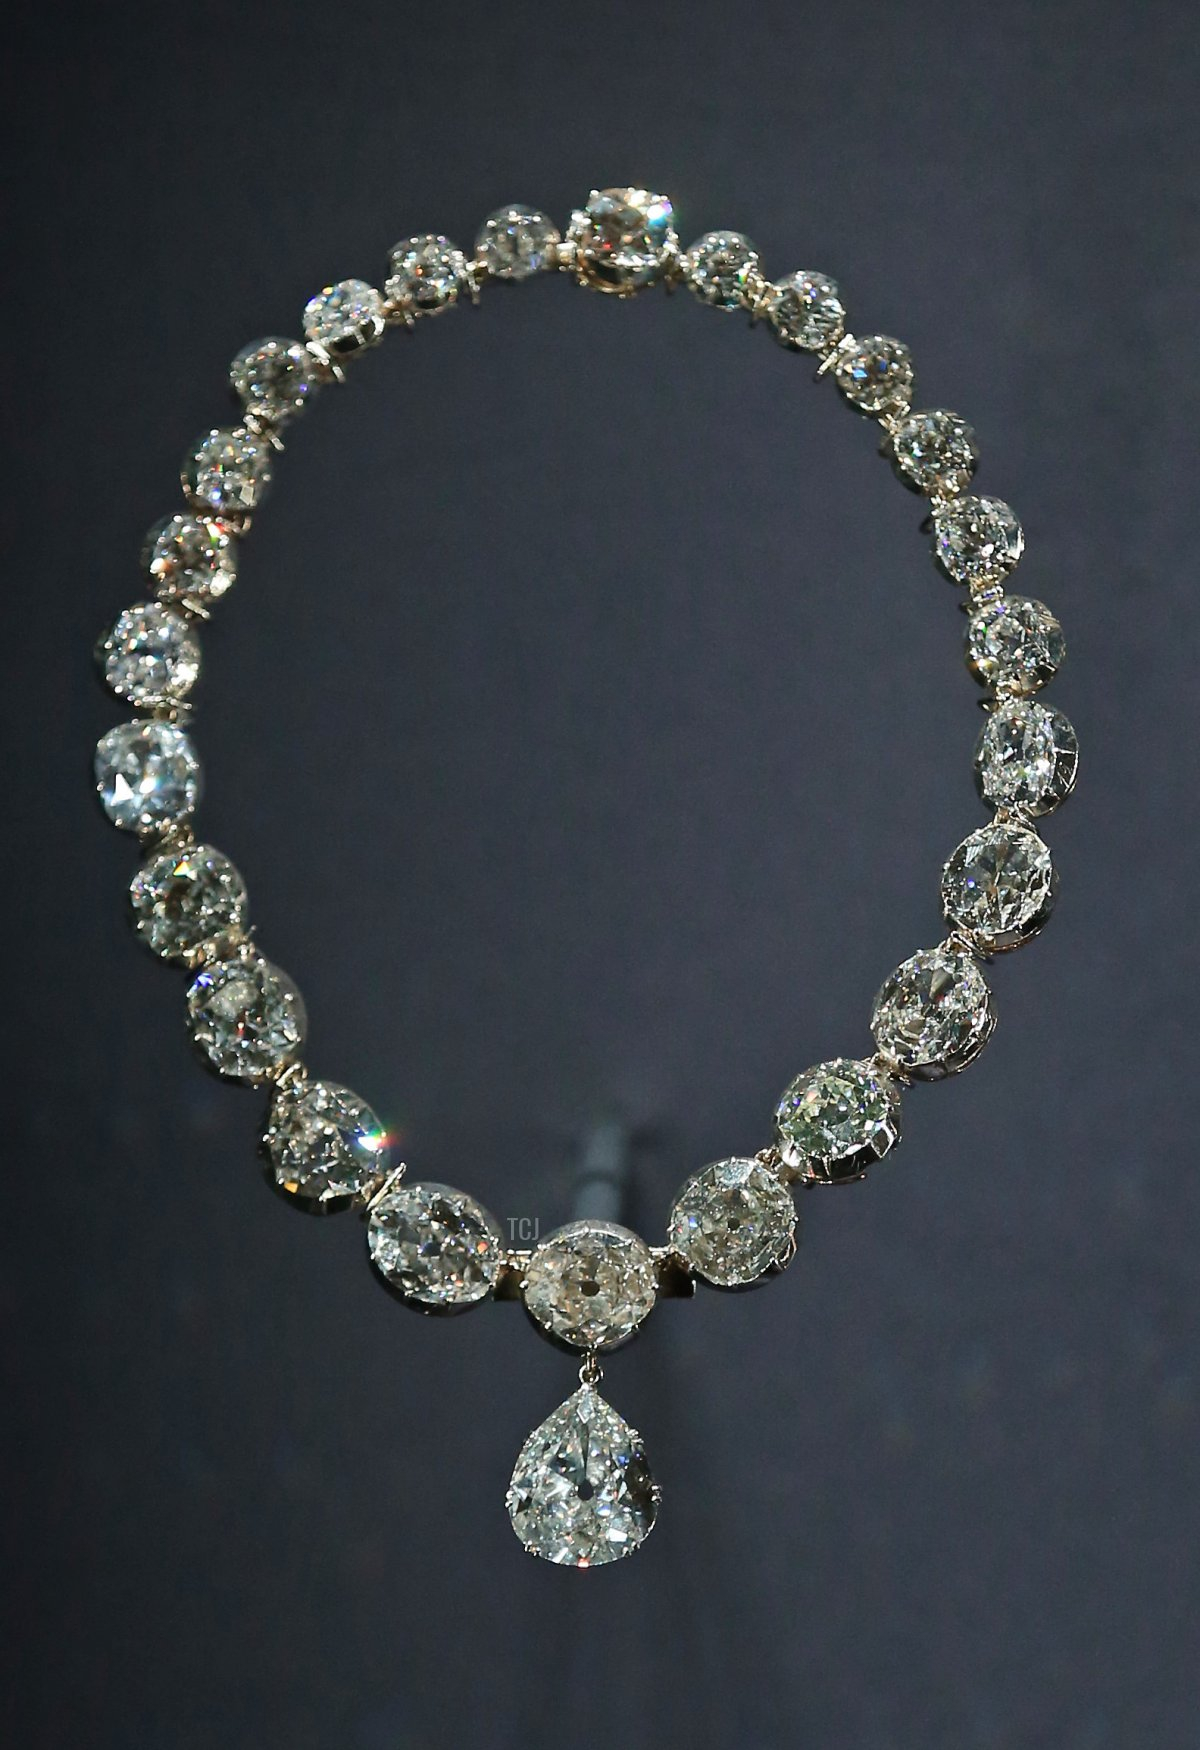 The Coronation Necklace is displayed at The Royal Welcome Summer opening at Buckingham Palace on July 23, 2015 in London